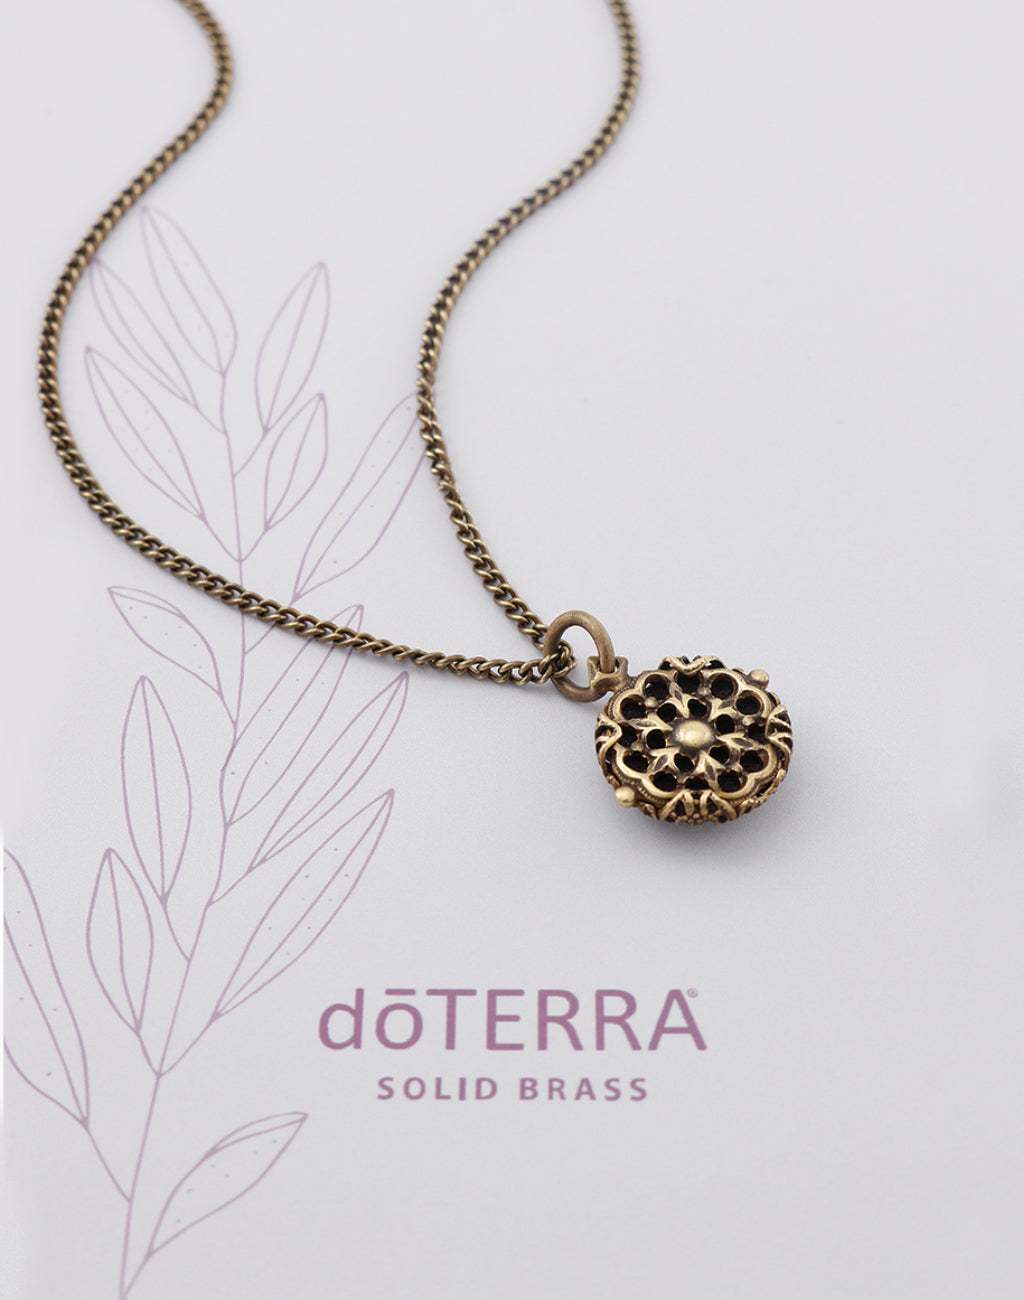 doTERRA Necklaces